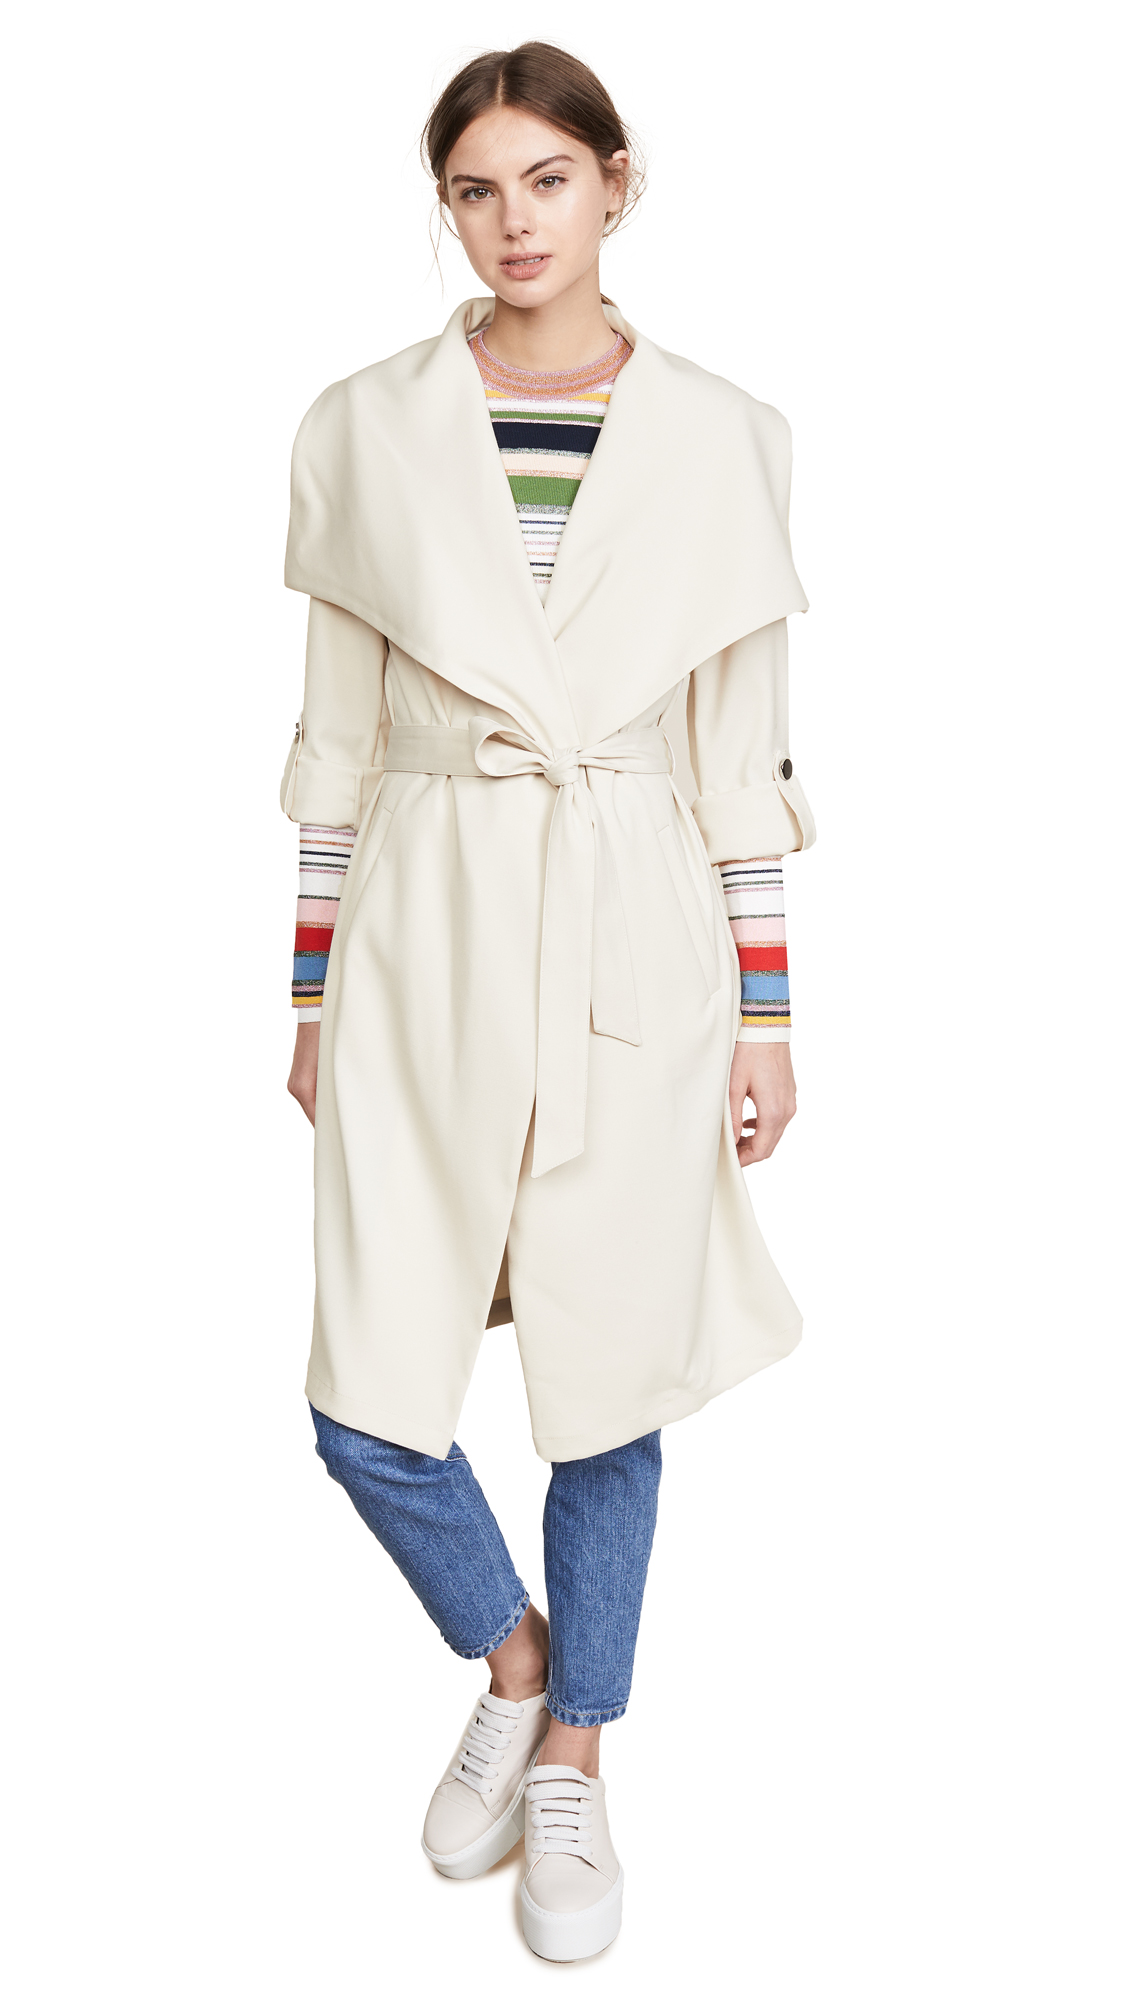 SOIA & KYO ORNELLA DRAPED COAT